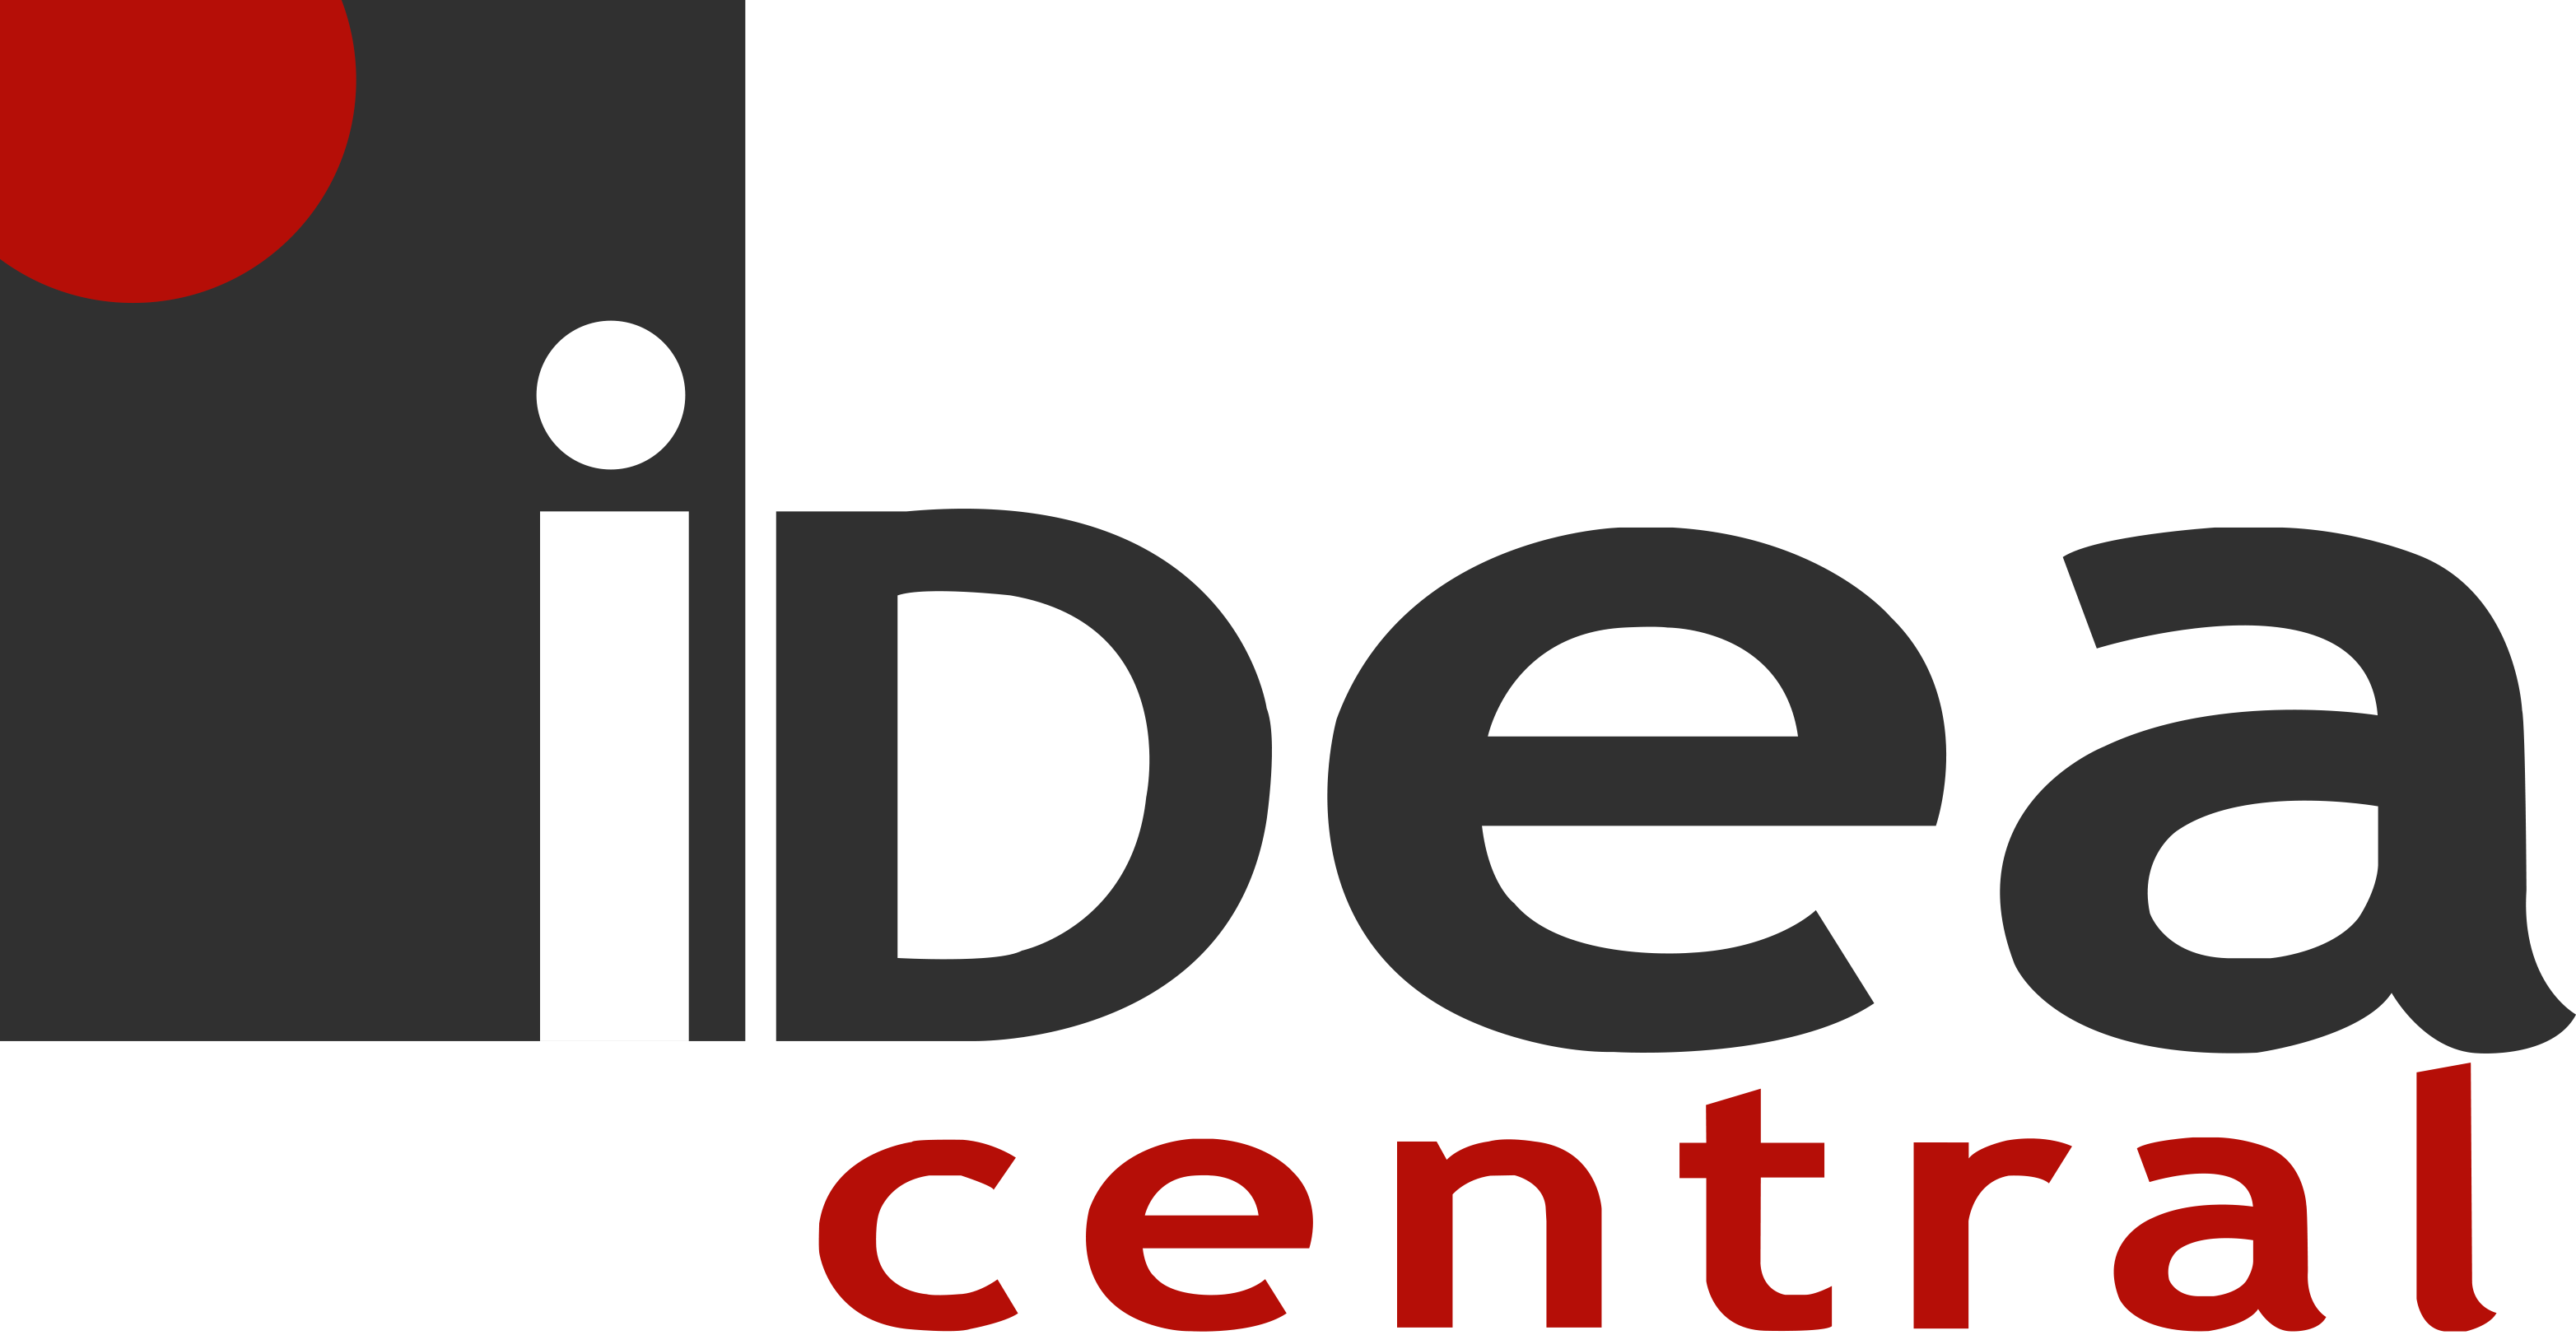 LogoIdeaCentral.png